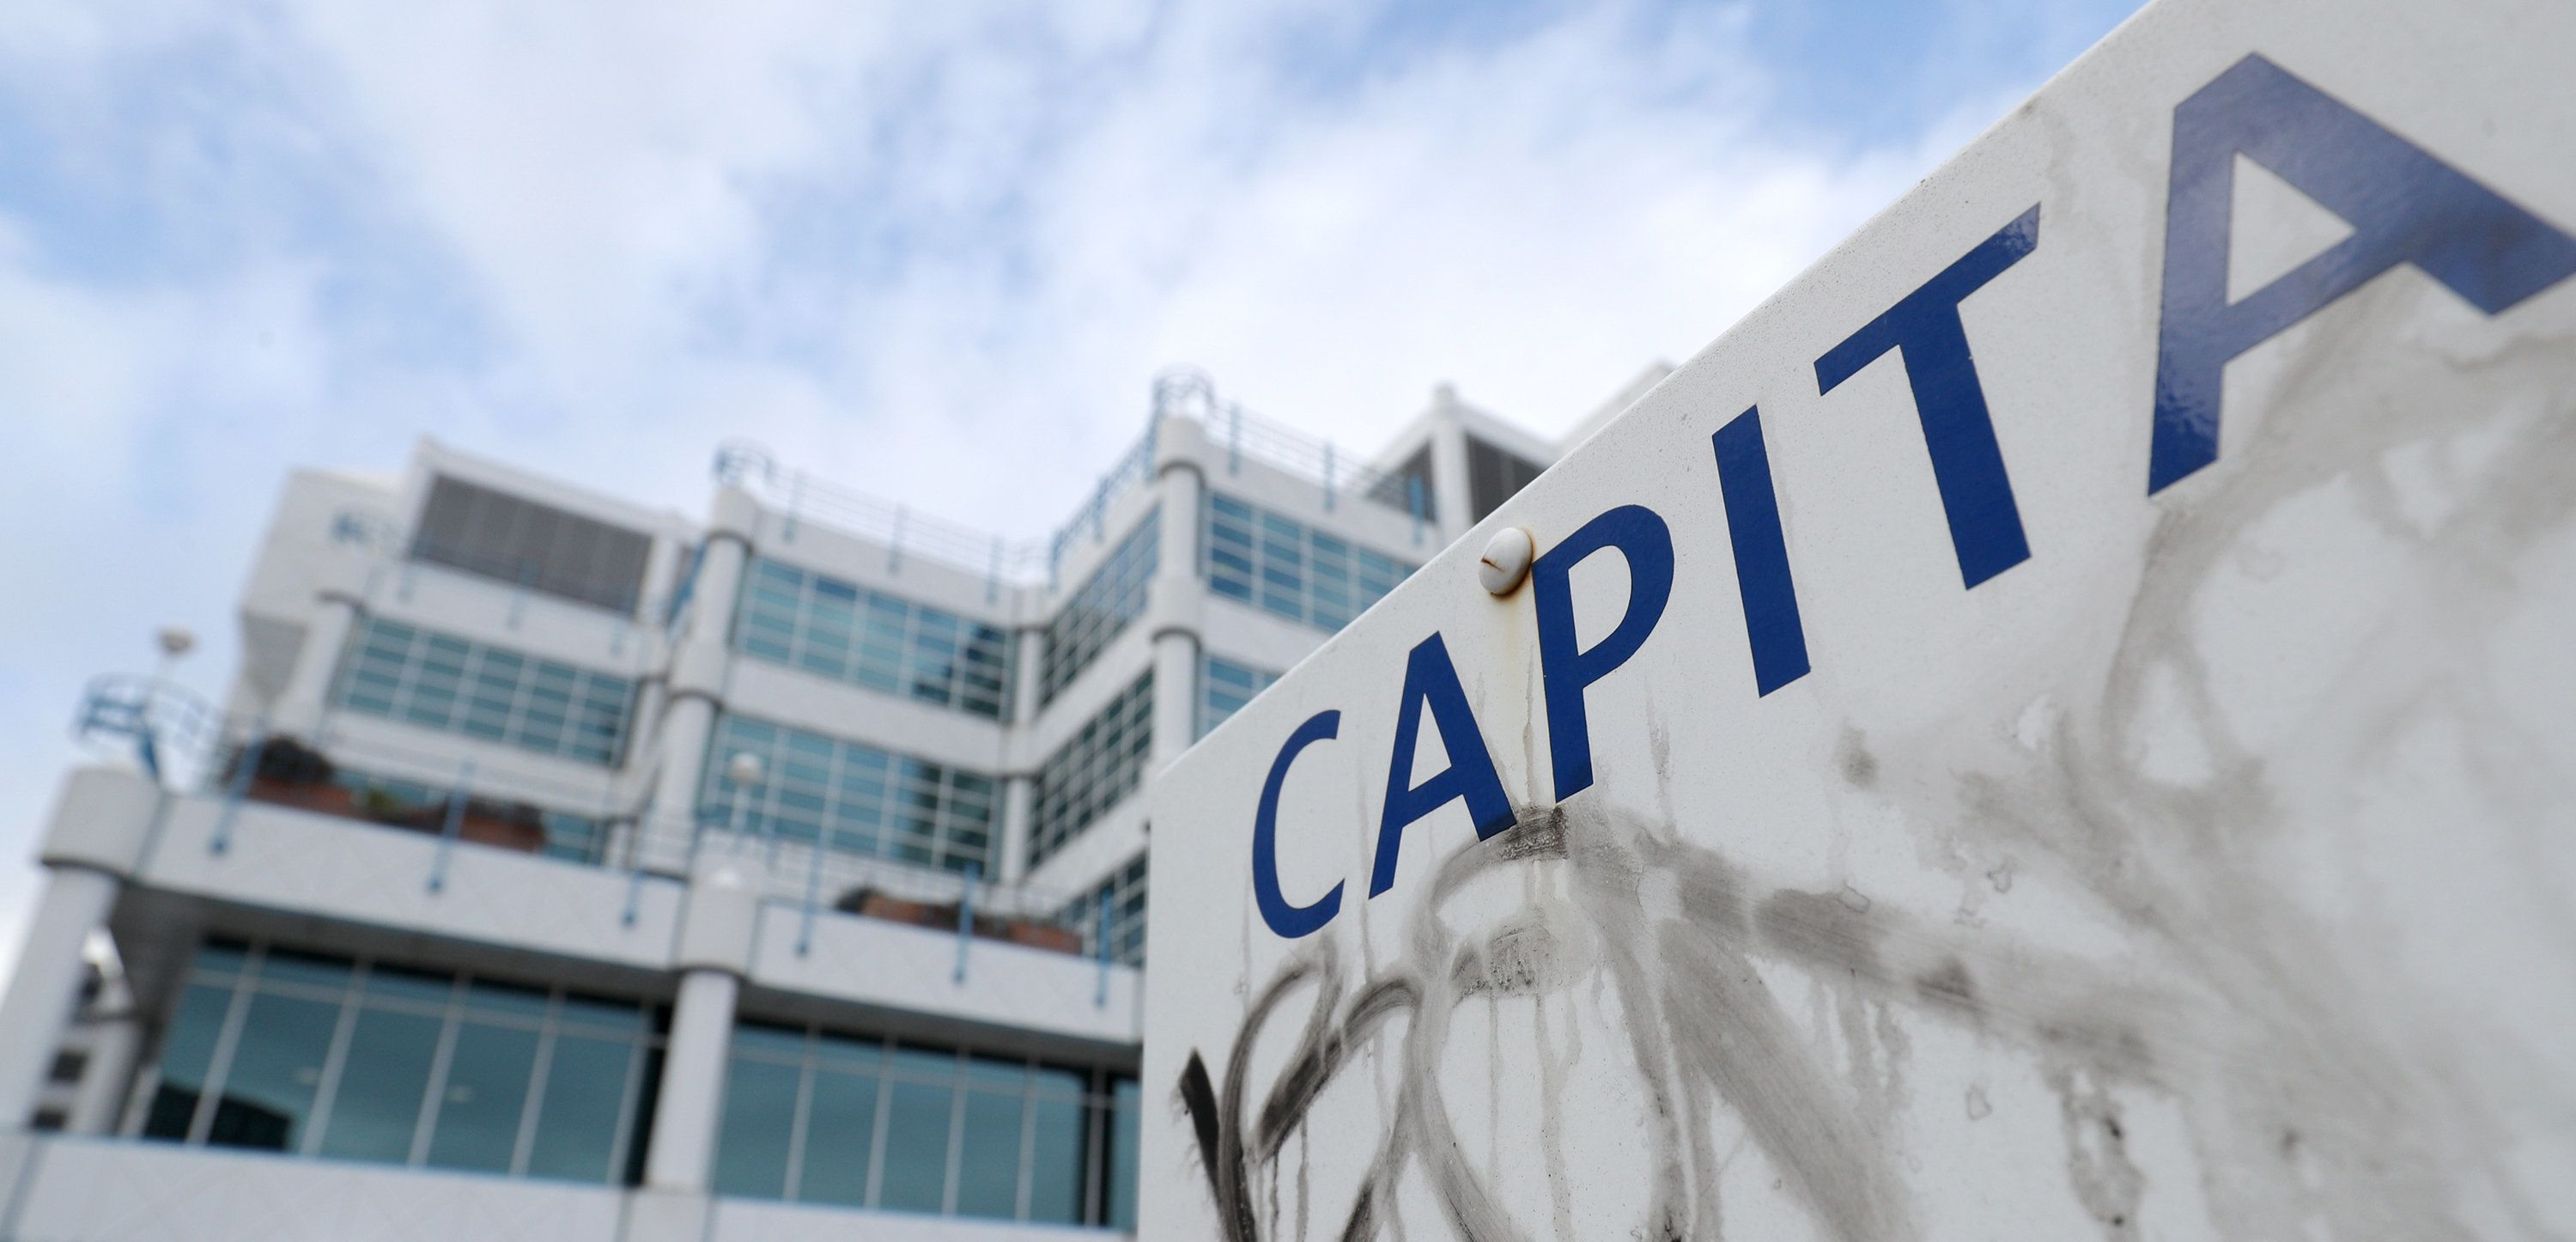 Revealed: The Private Companies Paid £4.2bn To Provide Public Services Last